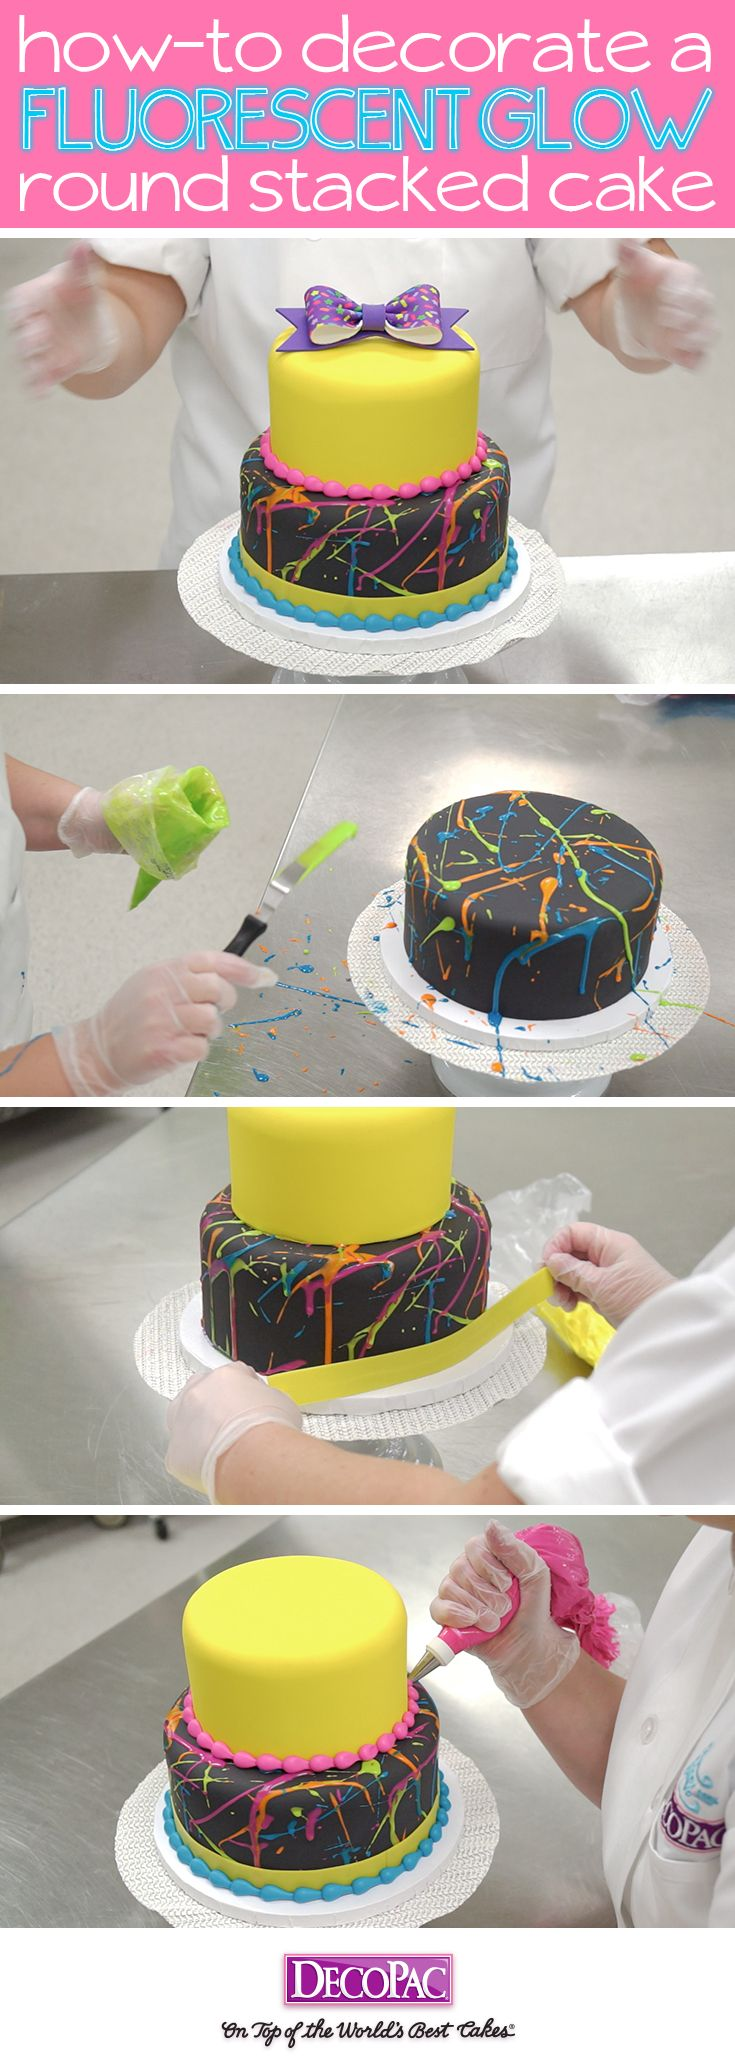 Microsoft emoji list emojistwitter emoji list emojis - Learn How To Make This Trendy Neon Splattered Cake With Ready To Place Gum